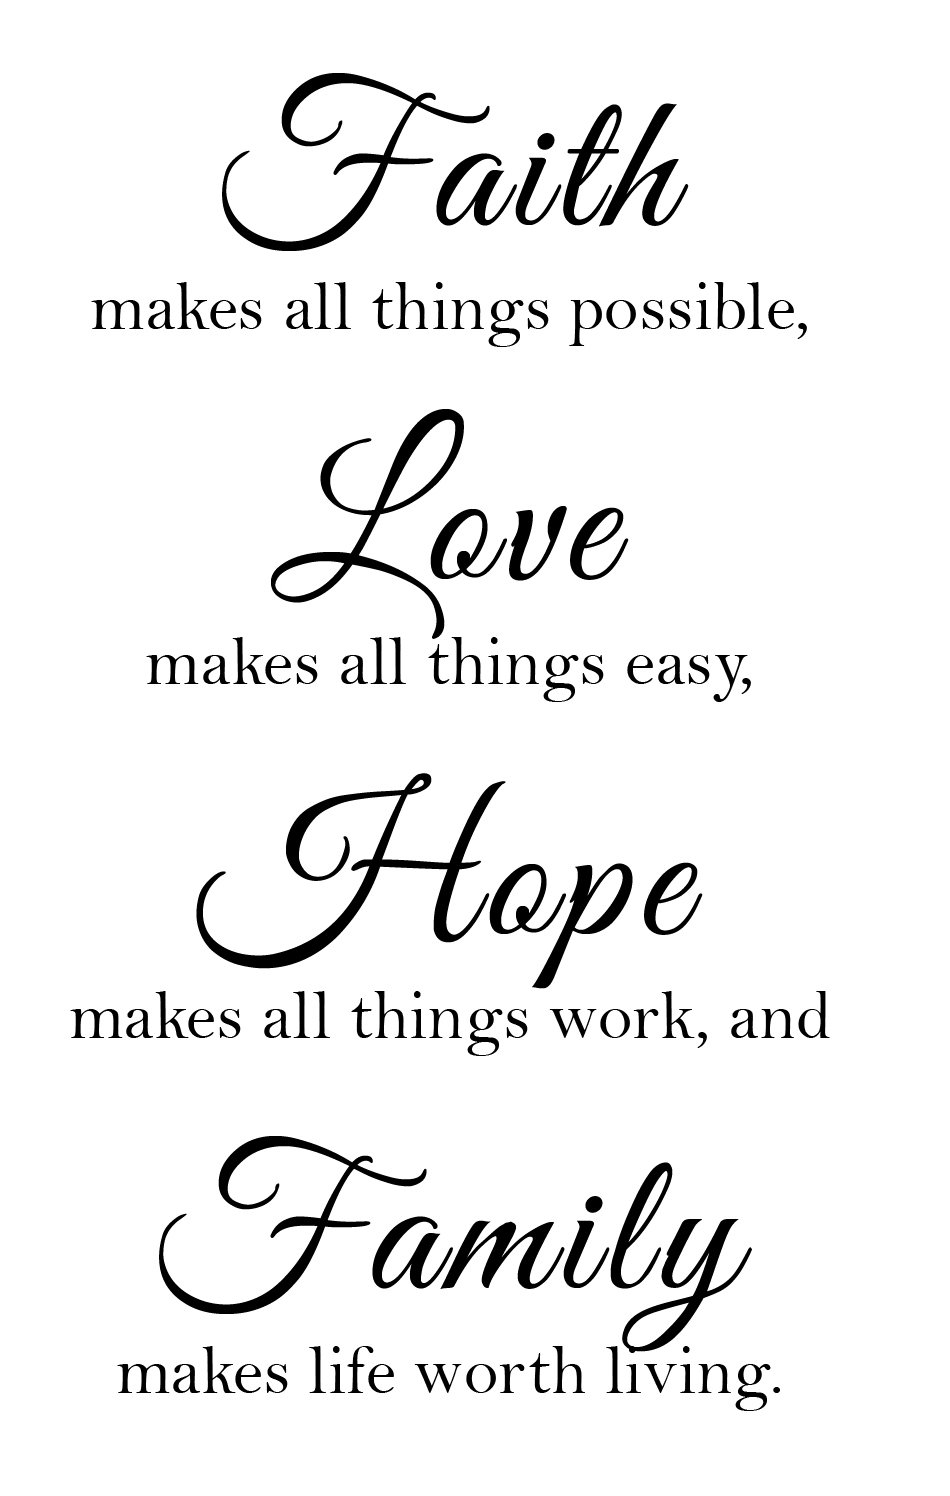 Newclew Faith Makes All Things Possible, Love Makes All Things Easy, Hope Make All Things Work, and Family Makes Life Worth Living Wall Art Sayings Sticker Décor Decal Prayer Church Jesus Pray